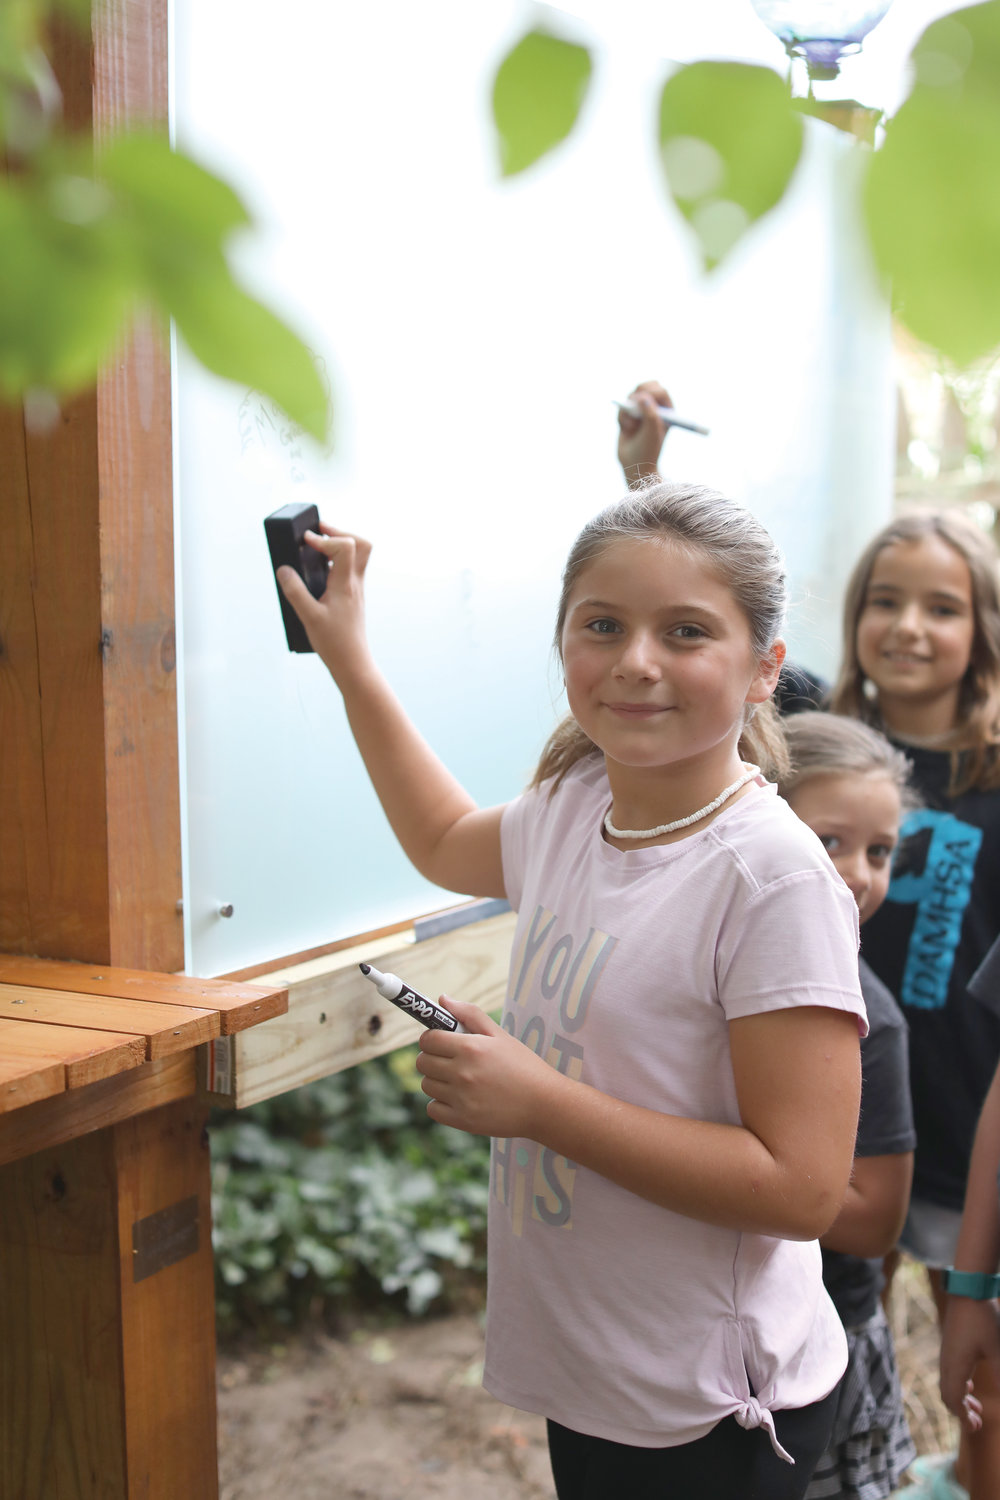 Shortly before the first day of school, students, parents and teachers help put the finishing touches on the Sister Mary Angelus Outdoor Classroom.